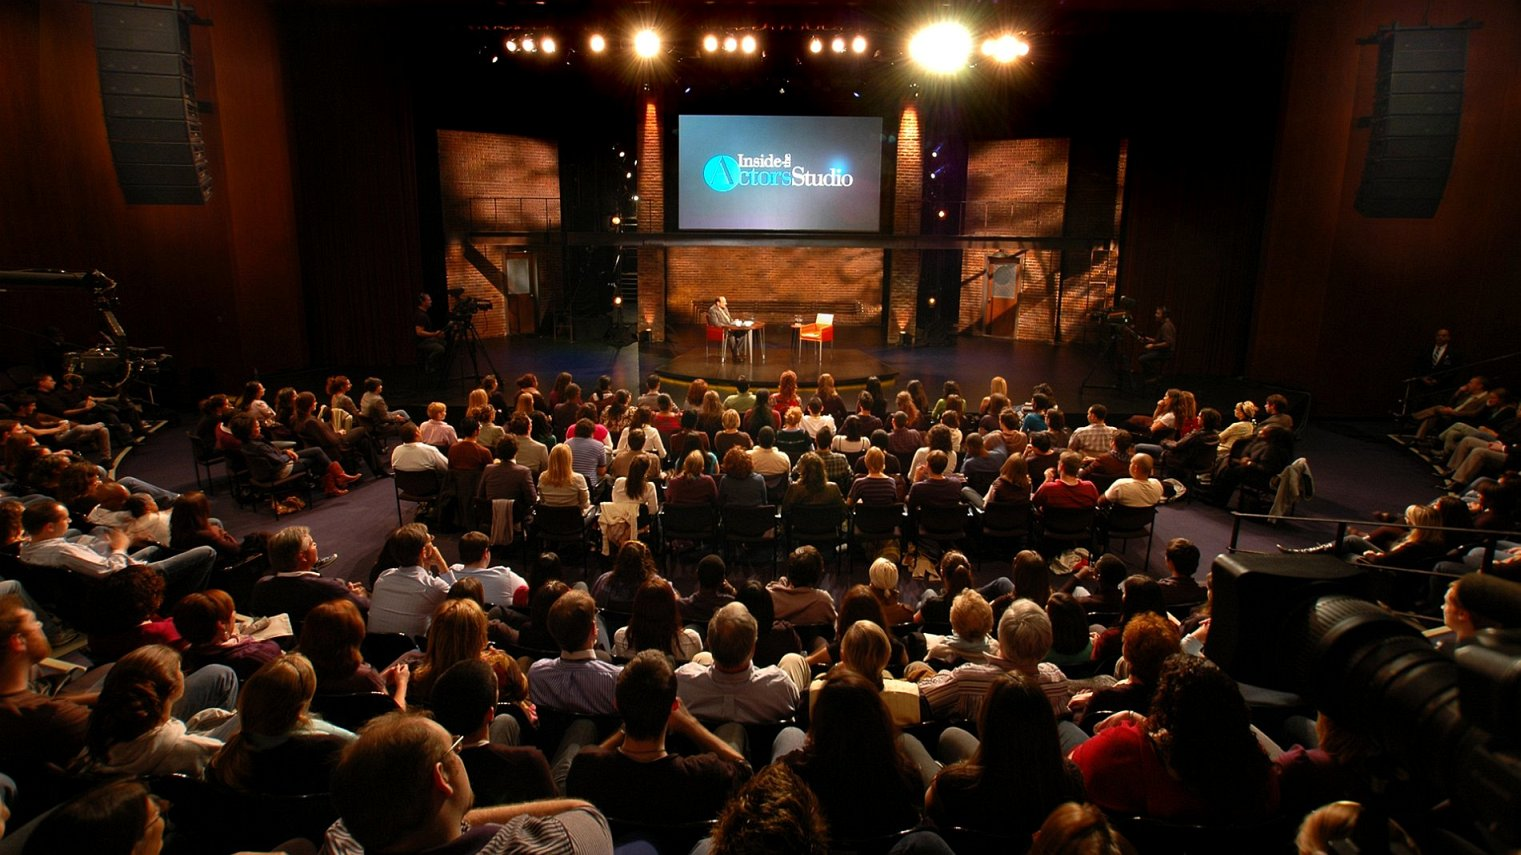 what time is Inside the Actors Studio on